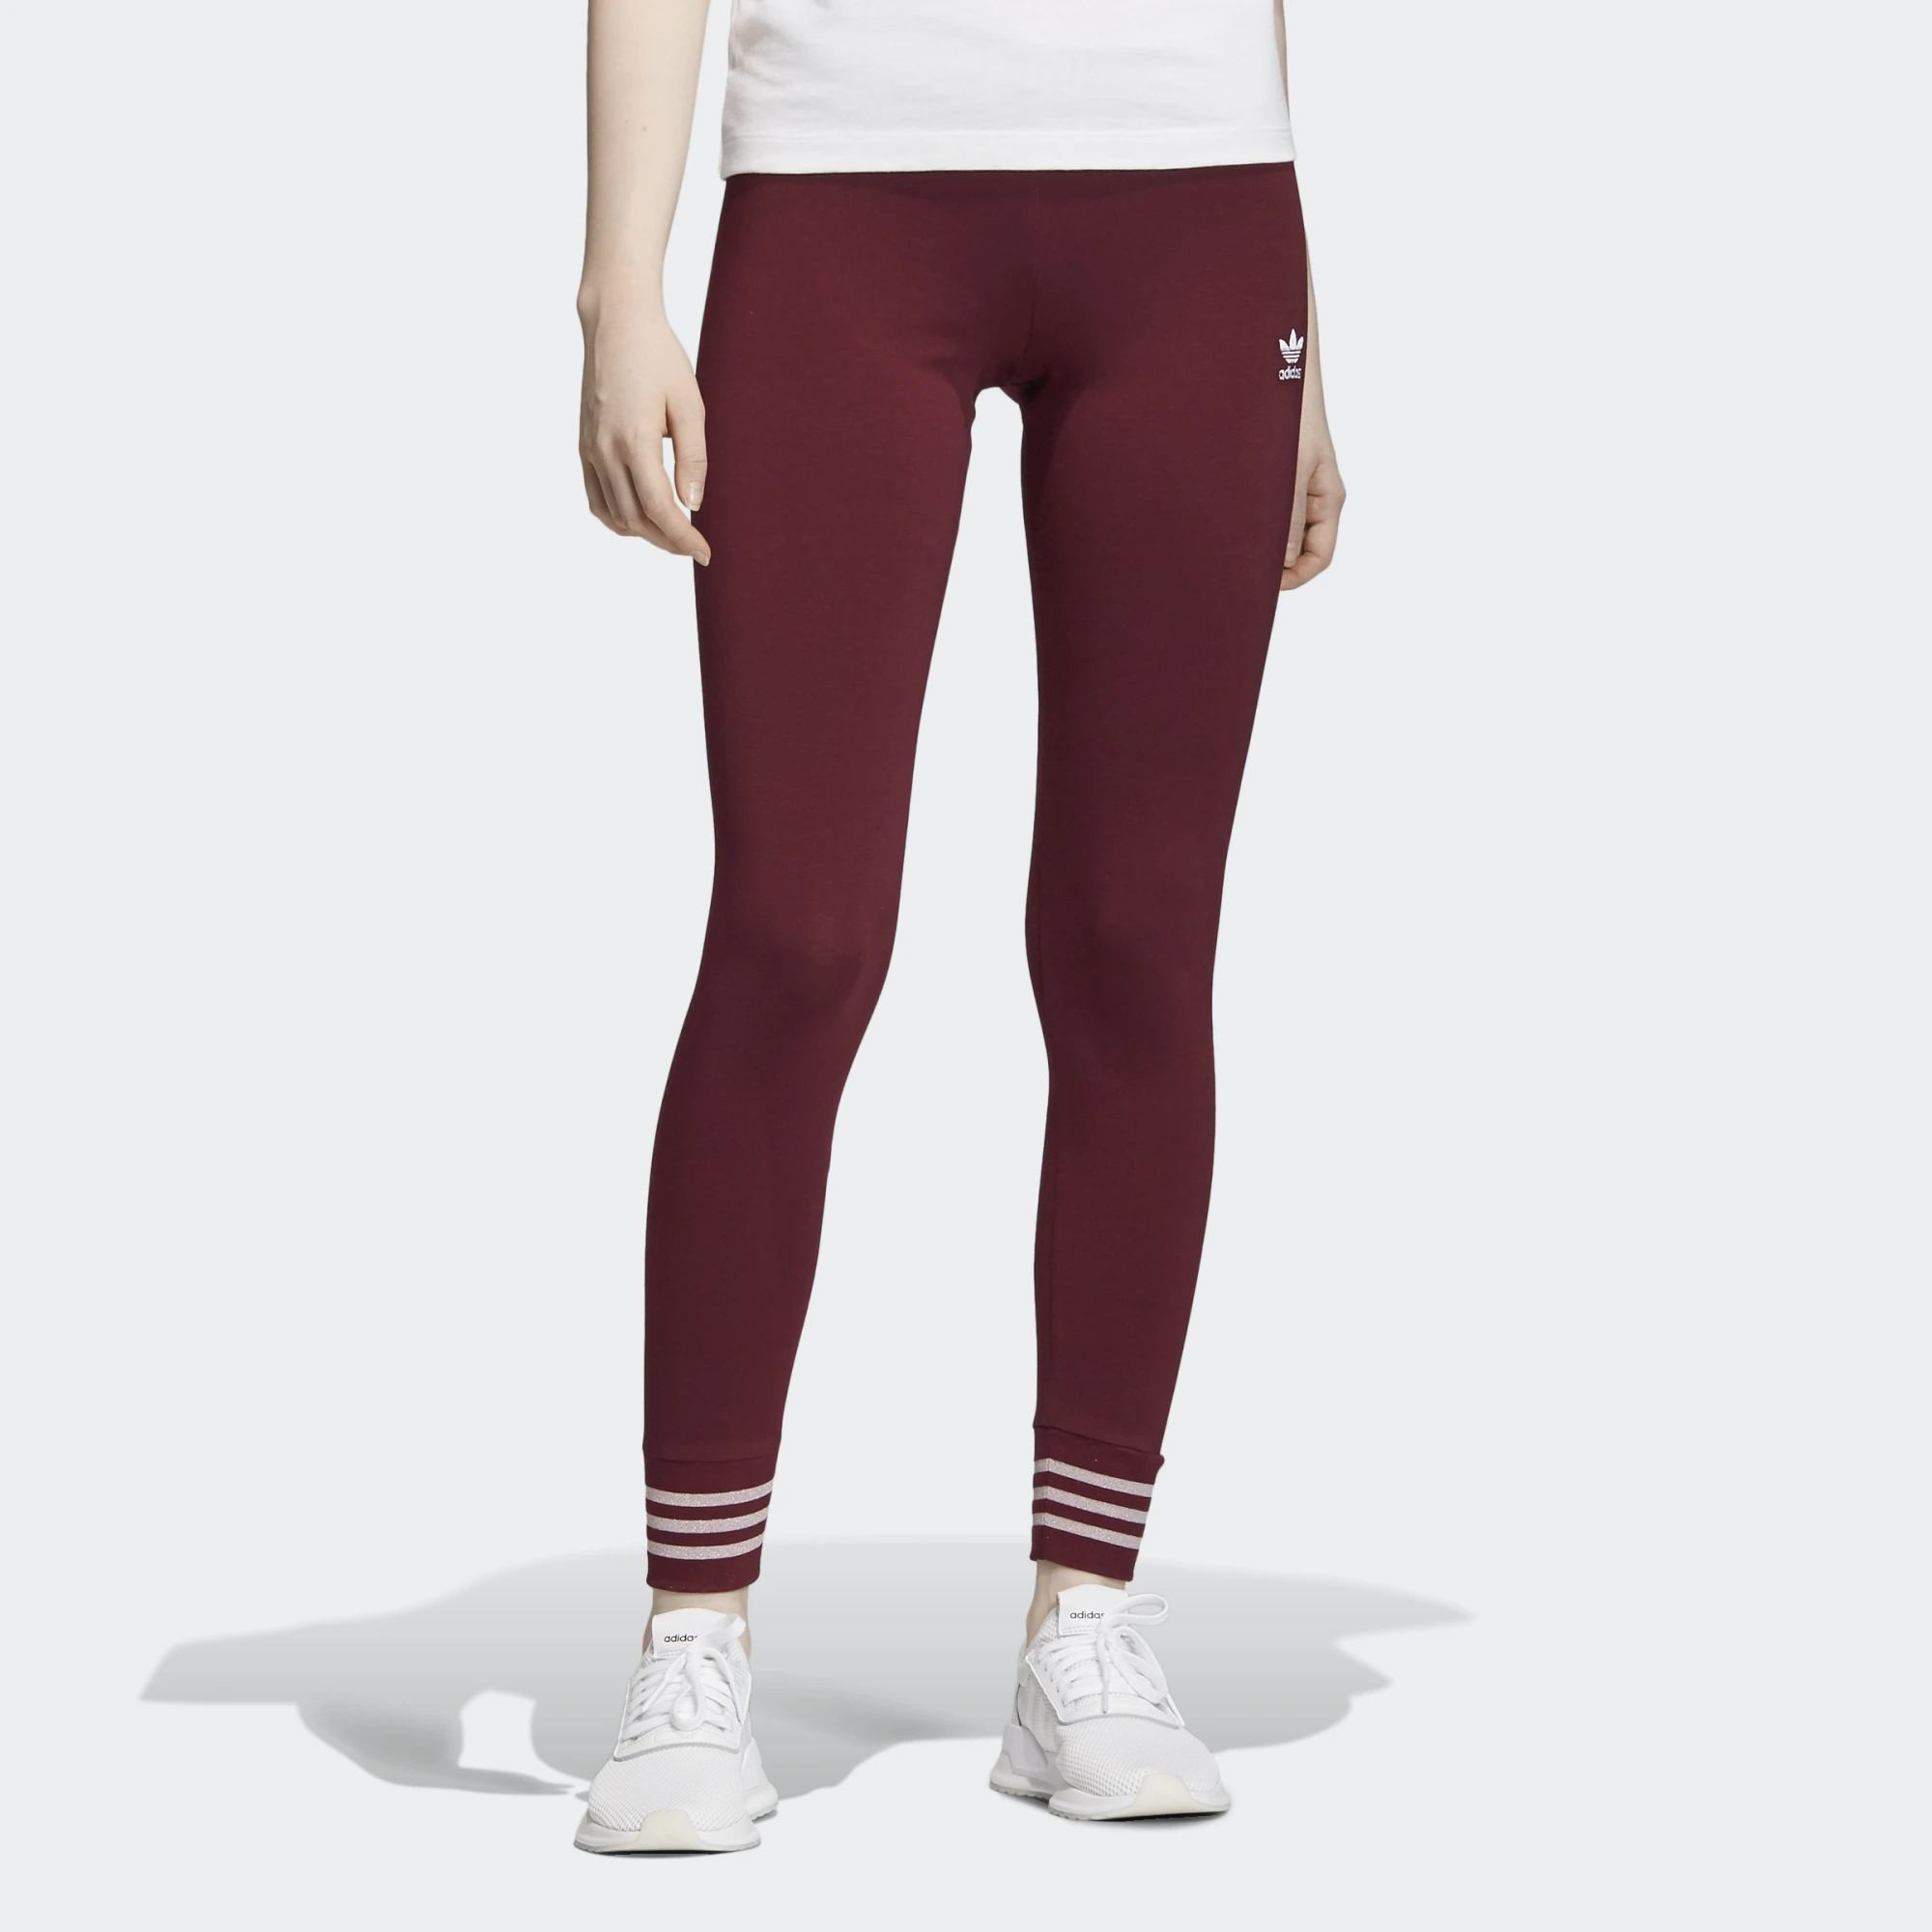 adidas Originals Women's Tights (9000031967_14856)